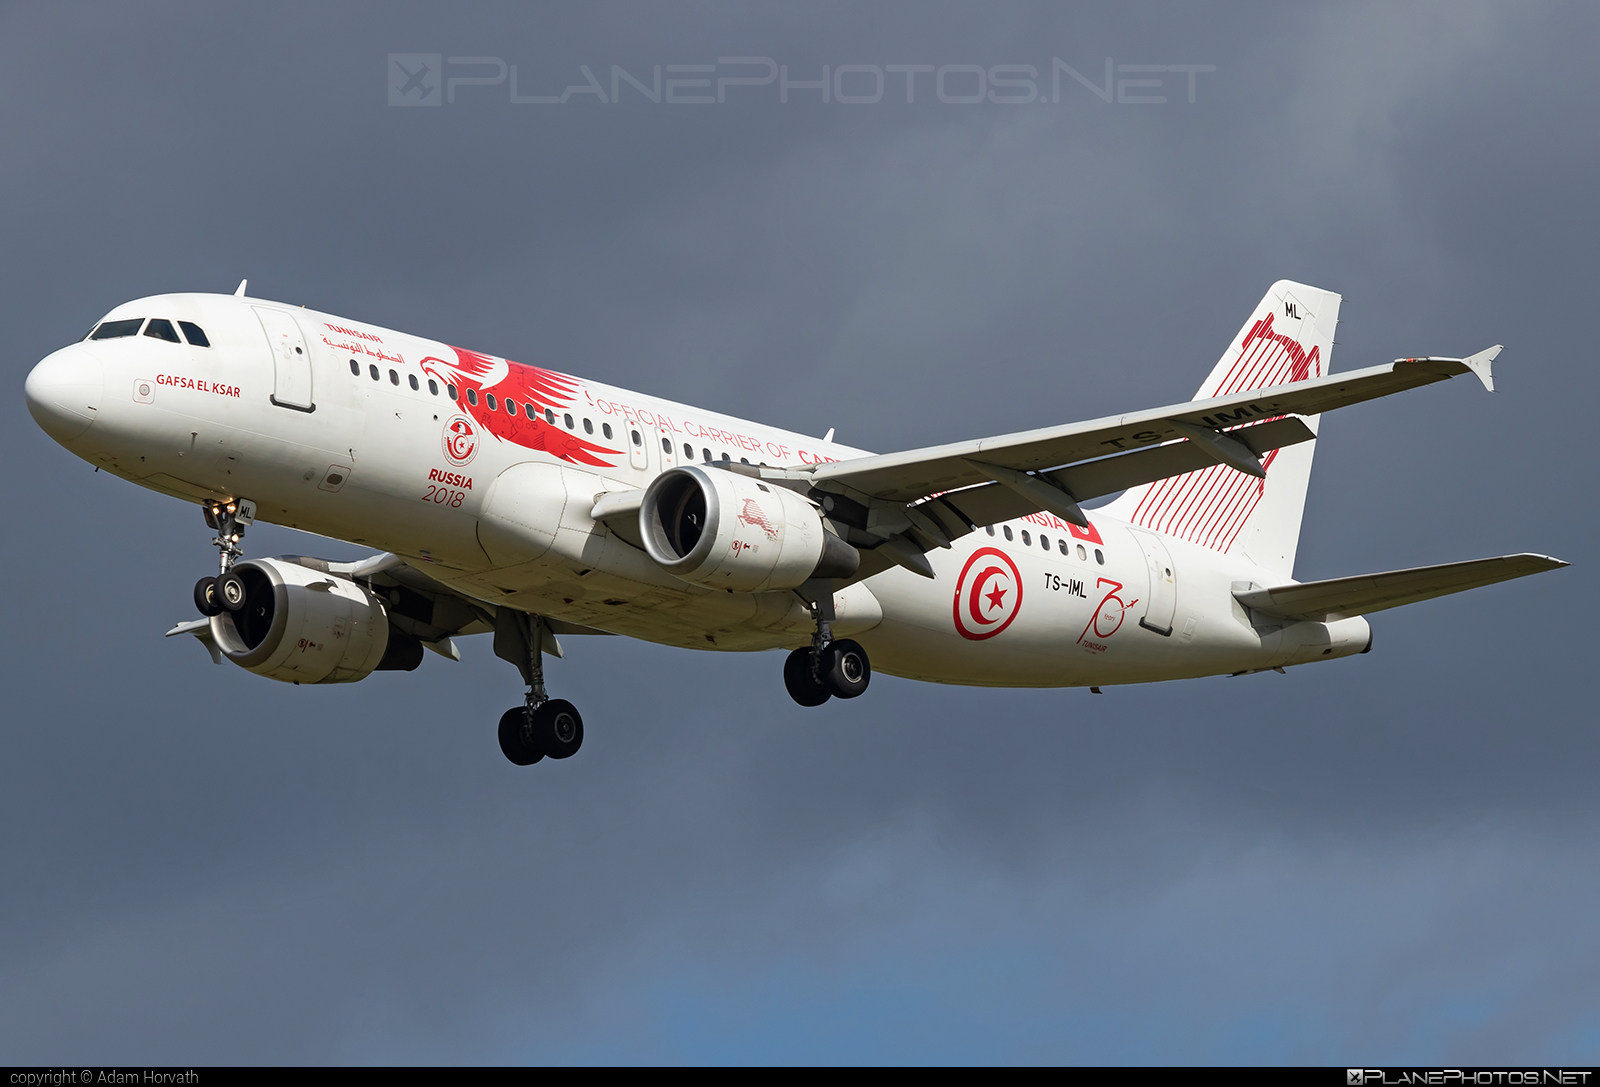 Airbus A320-211 - TS-IML operated by Tunisair #a320 #a320family #airbus #airbus320 #tunisair